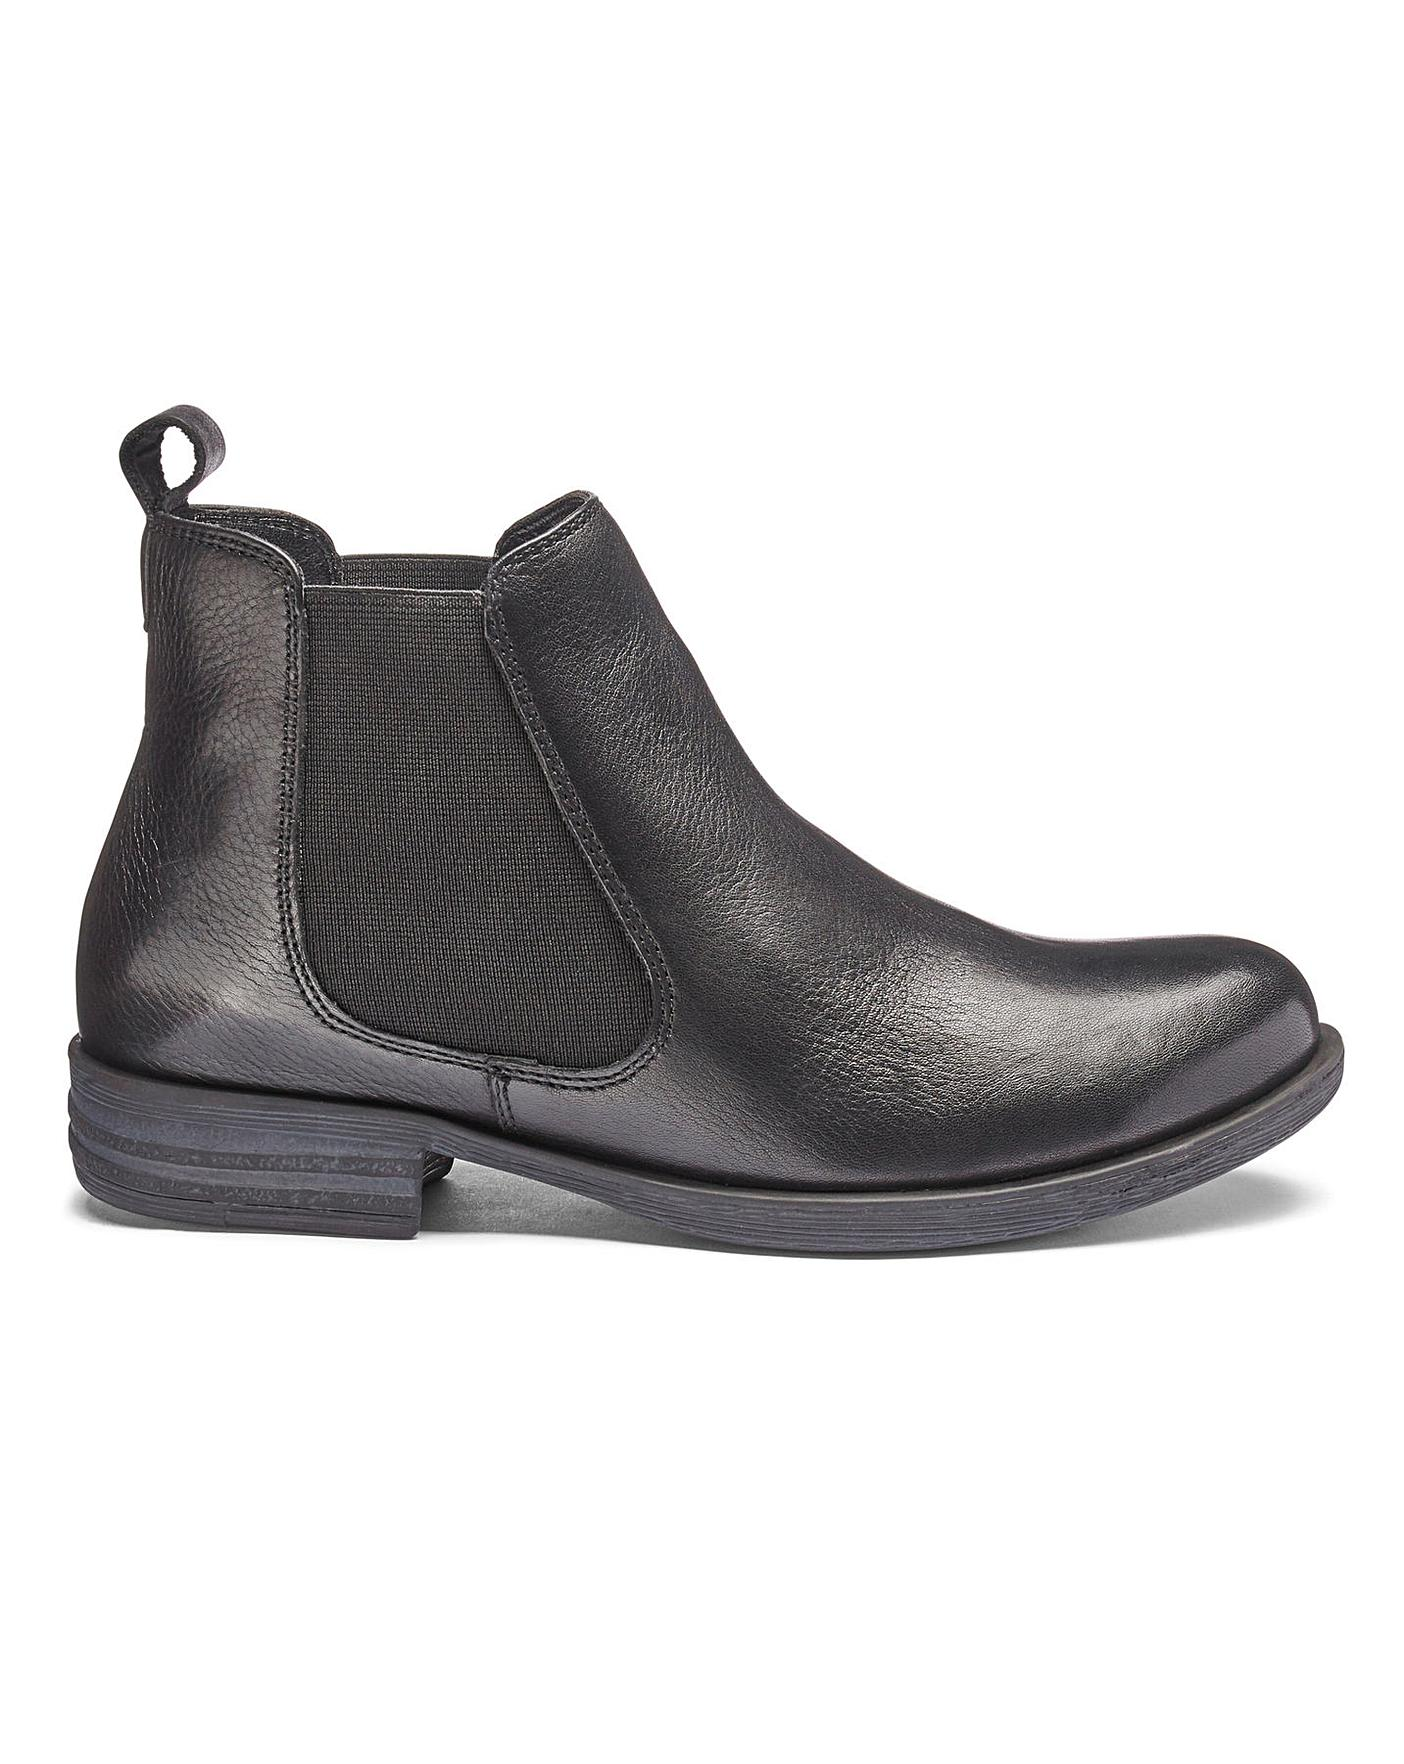 wholesale huge sale convenience goods Leather Chelsea Ankle Boots EEE Fit